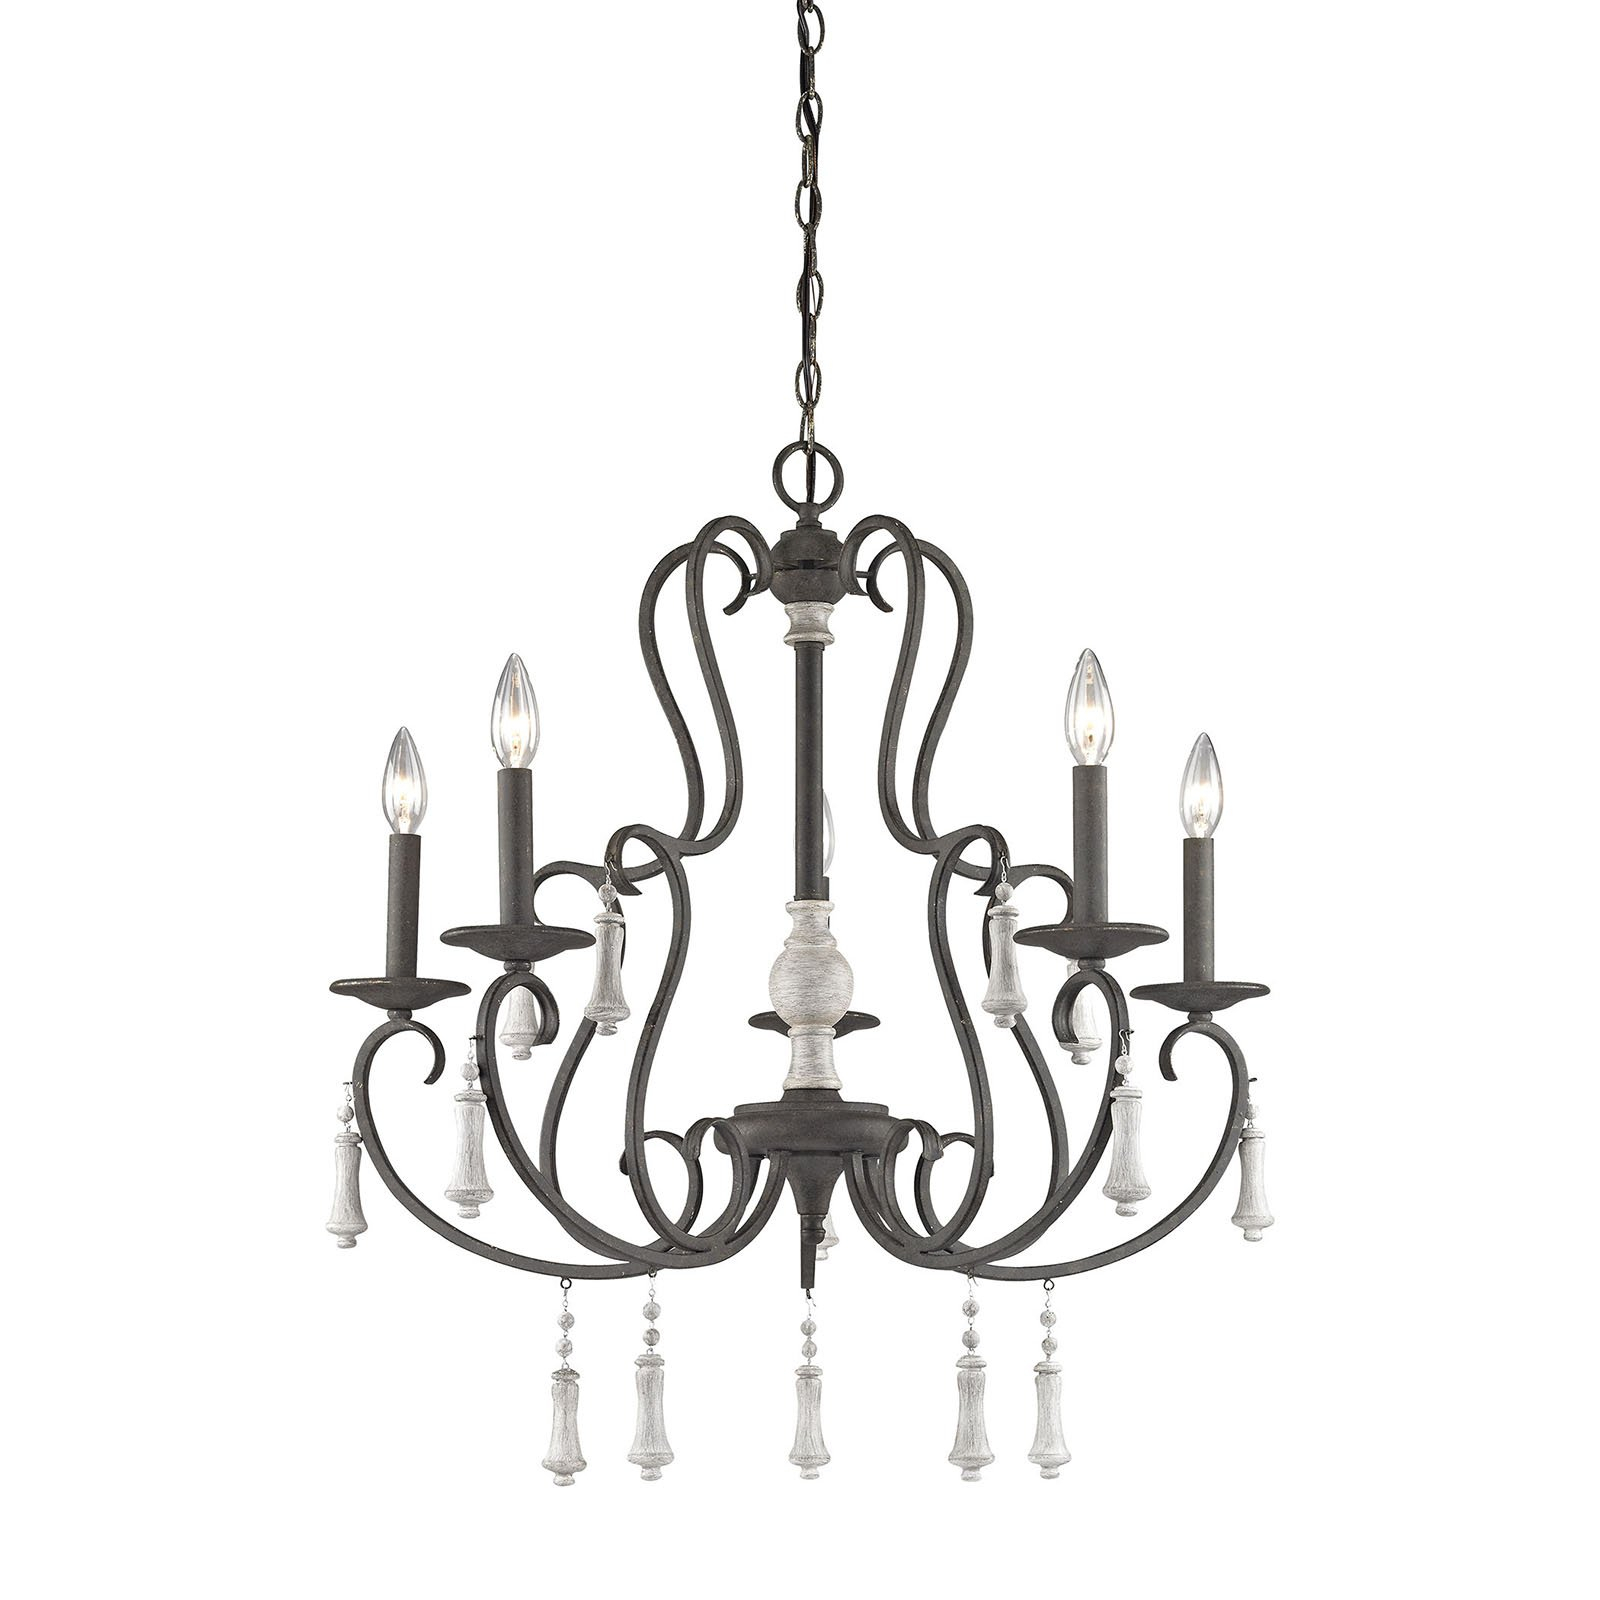 Elk Lighting Porto Cristo 52022/5 5 Light Chandelier In 2019 In Berger 5 Light Candle Style Chandeliers (Photo 10 of 30)